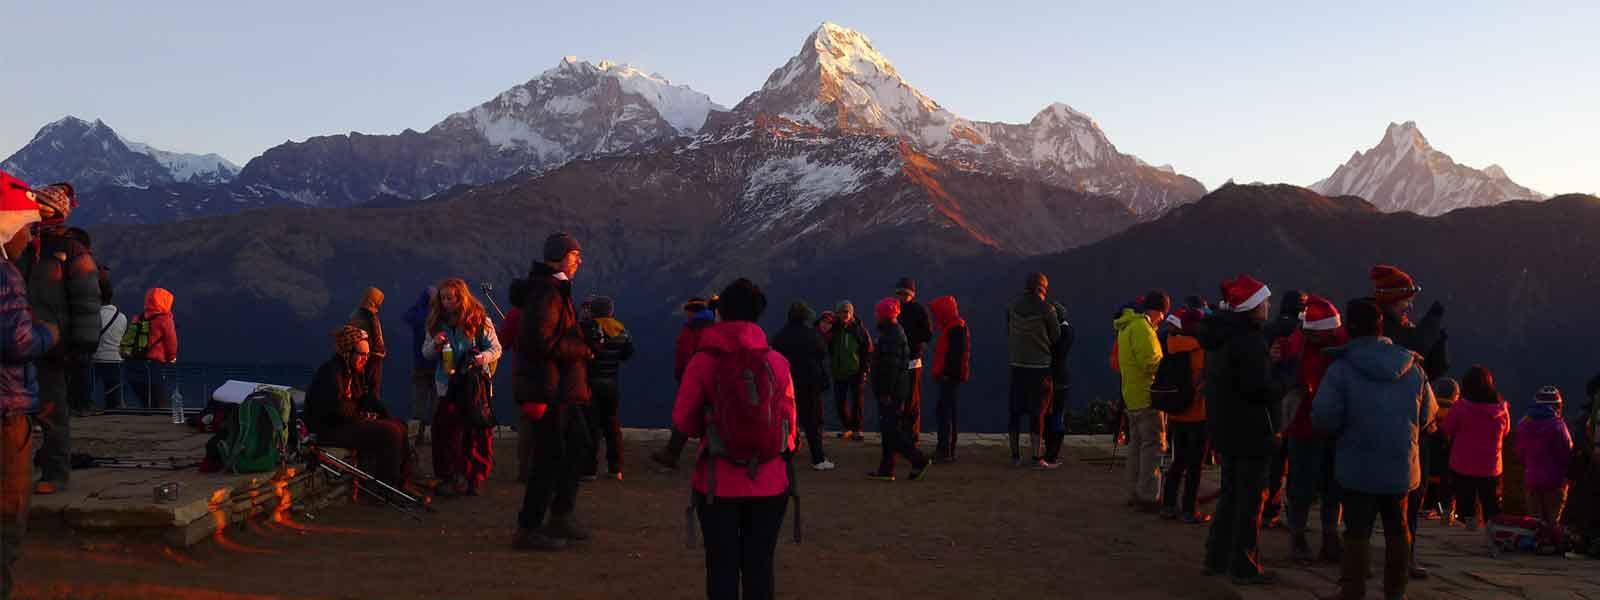 Ghorepani Poon Hill and Annapurna Base Camp Trekking